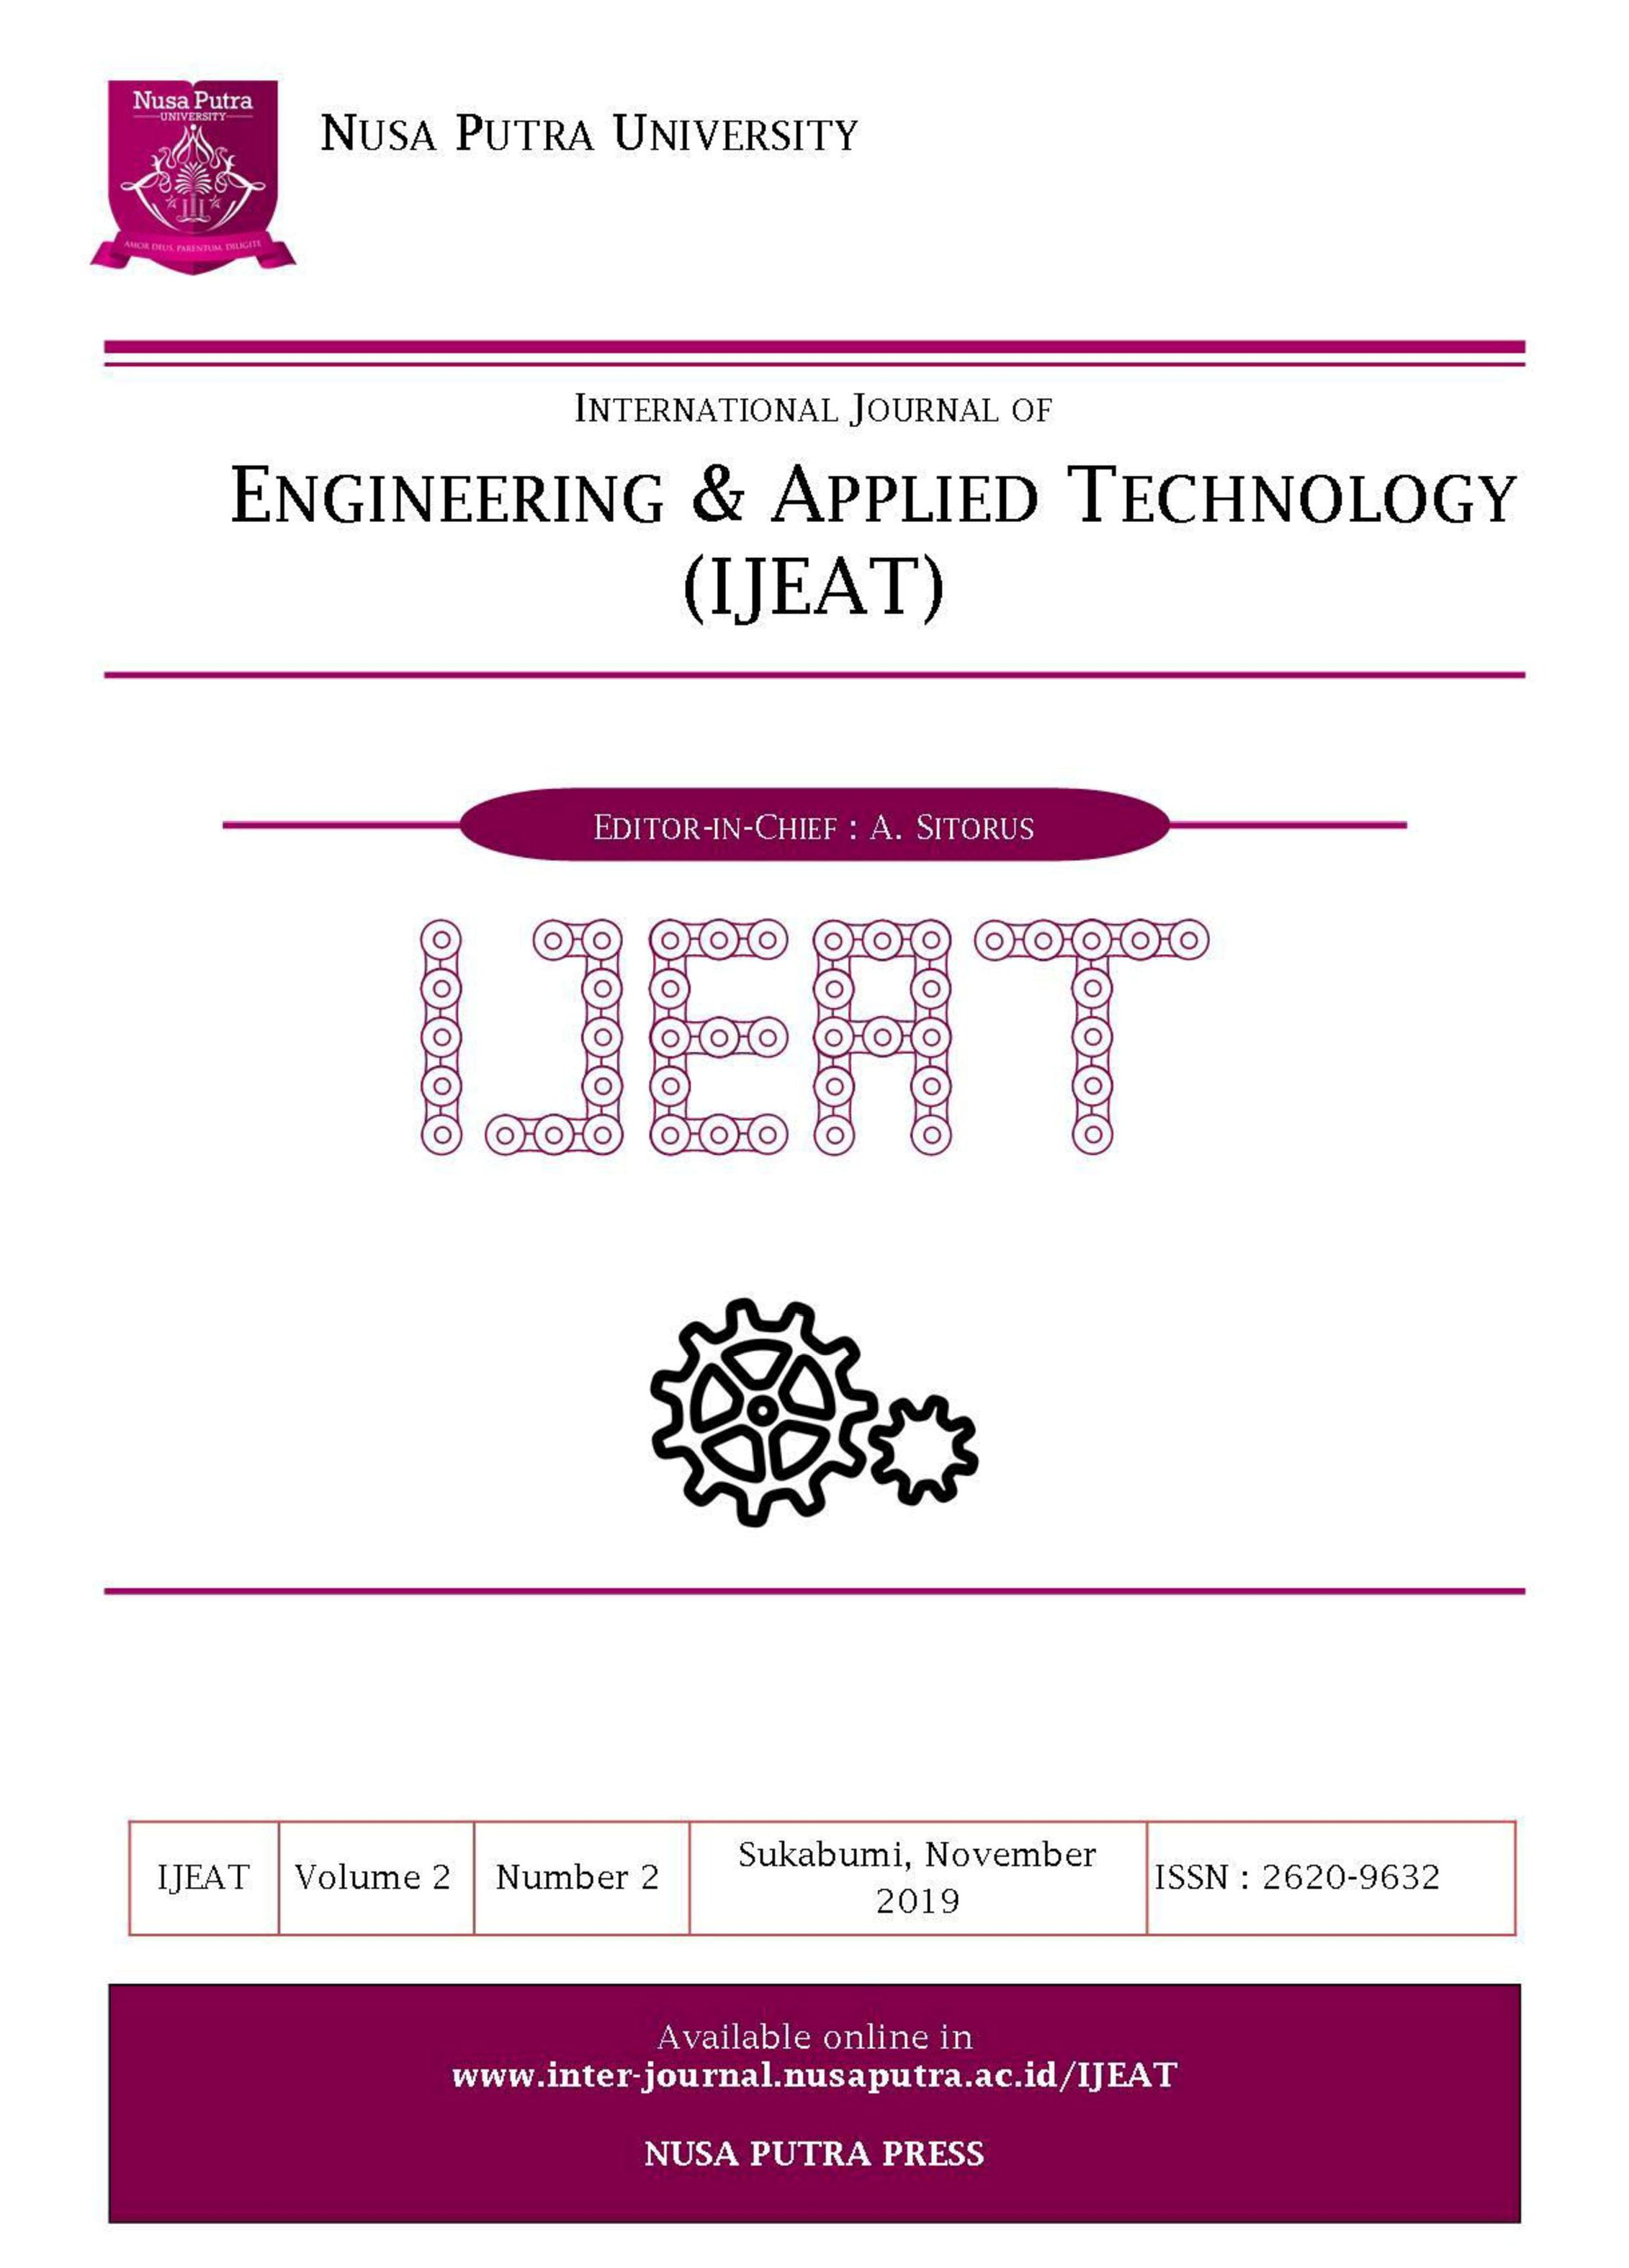 View Vol. 2 No. 2 (2019): International Journal of Engineering and Applied Technology (IJEAT)